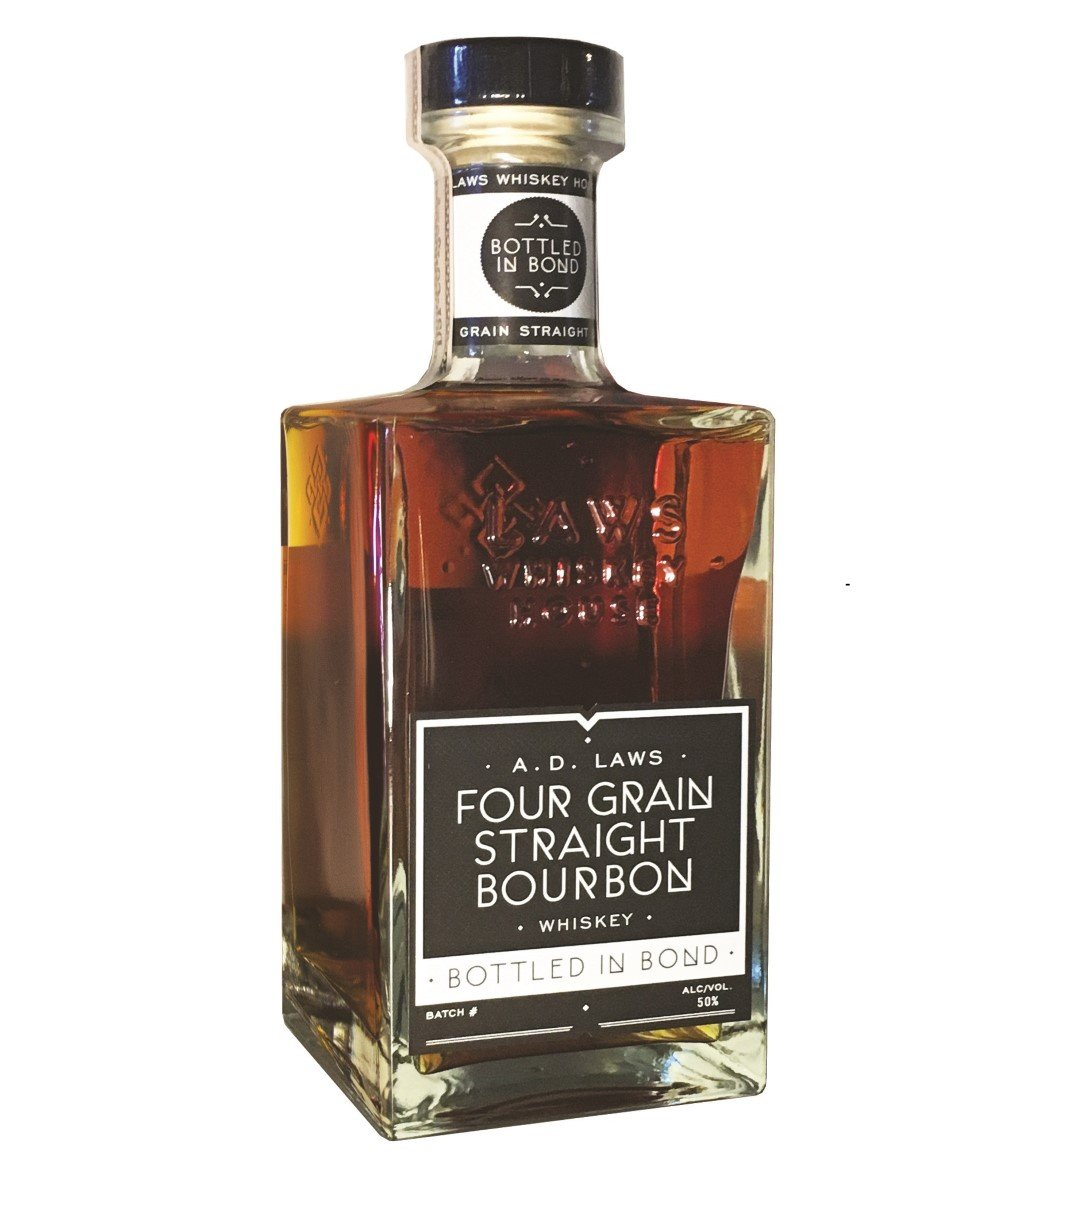 A.D. Laws Four Grain Straight Bourbon Bottled in Bond